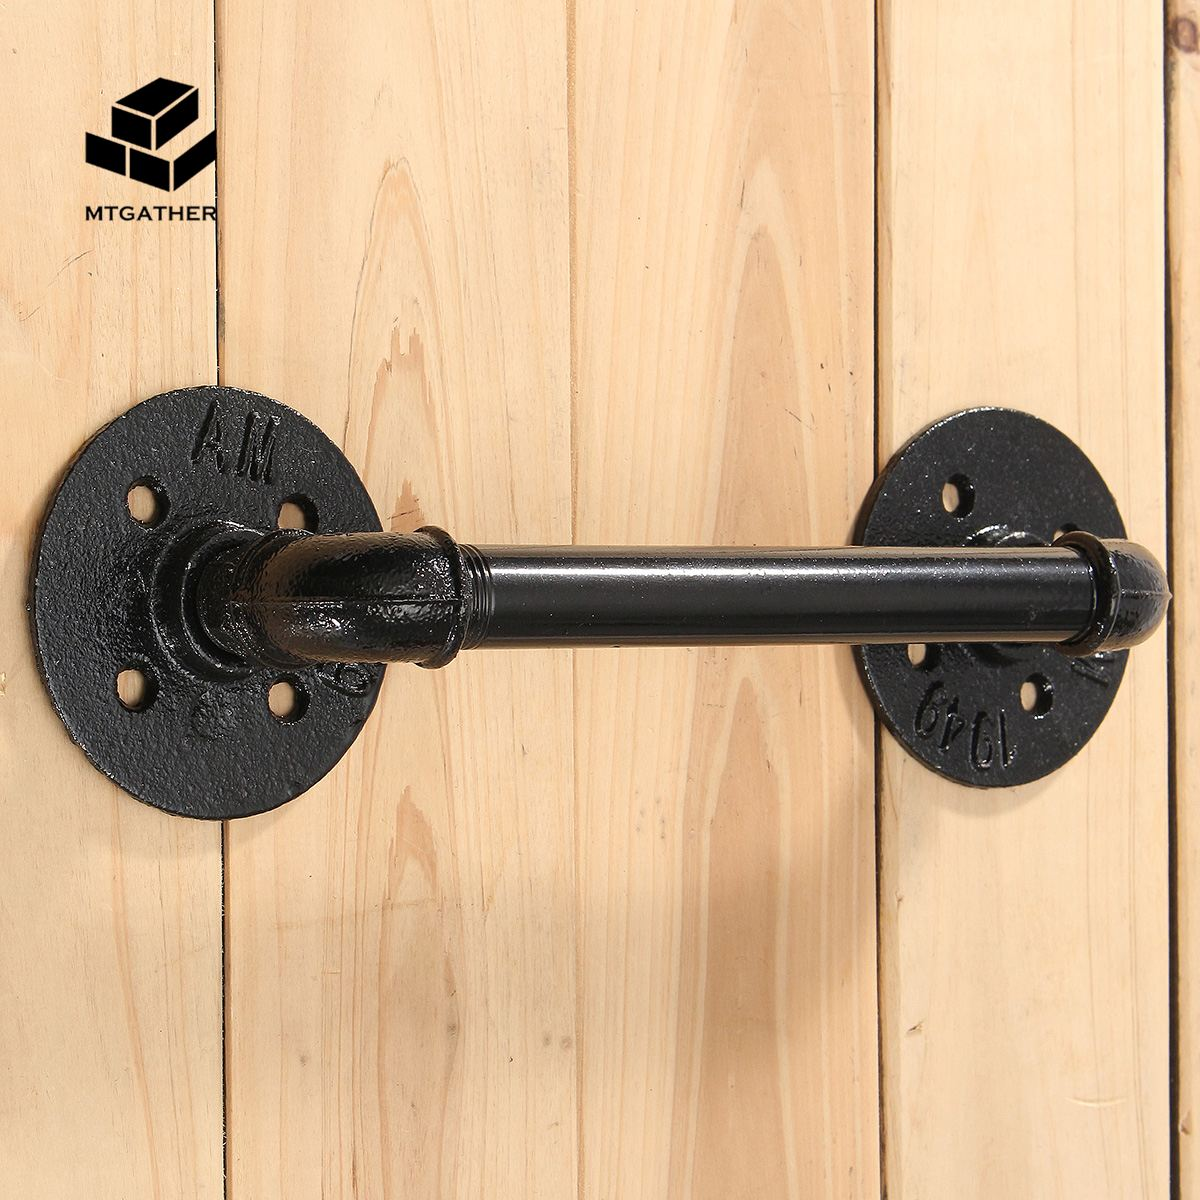 MTGATHER Antique Rustic Style Cast Iron Black Pipe Door Handle Gate Pull With Screws for Home Door Hardware цена 2017